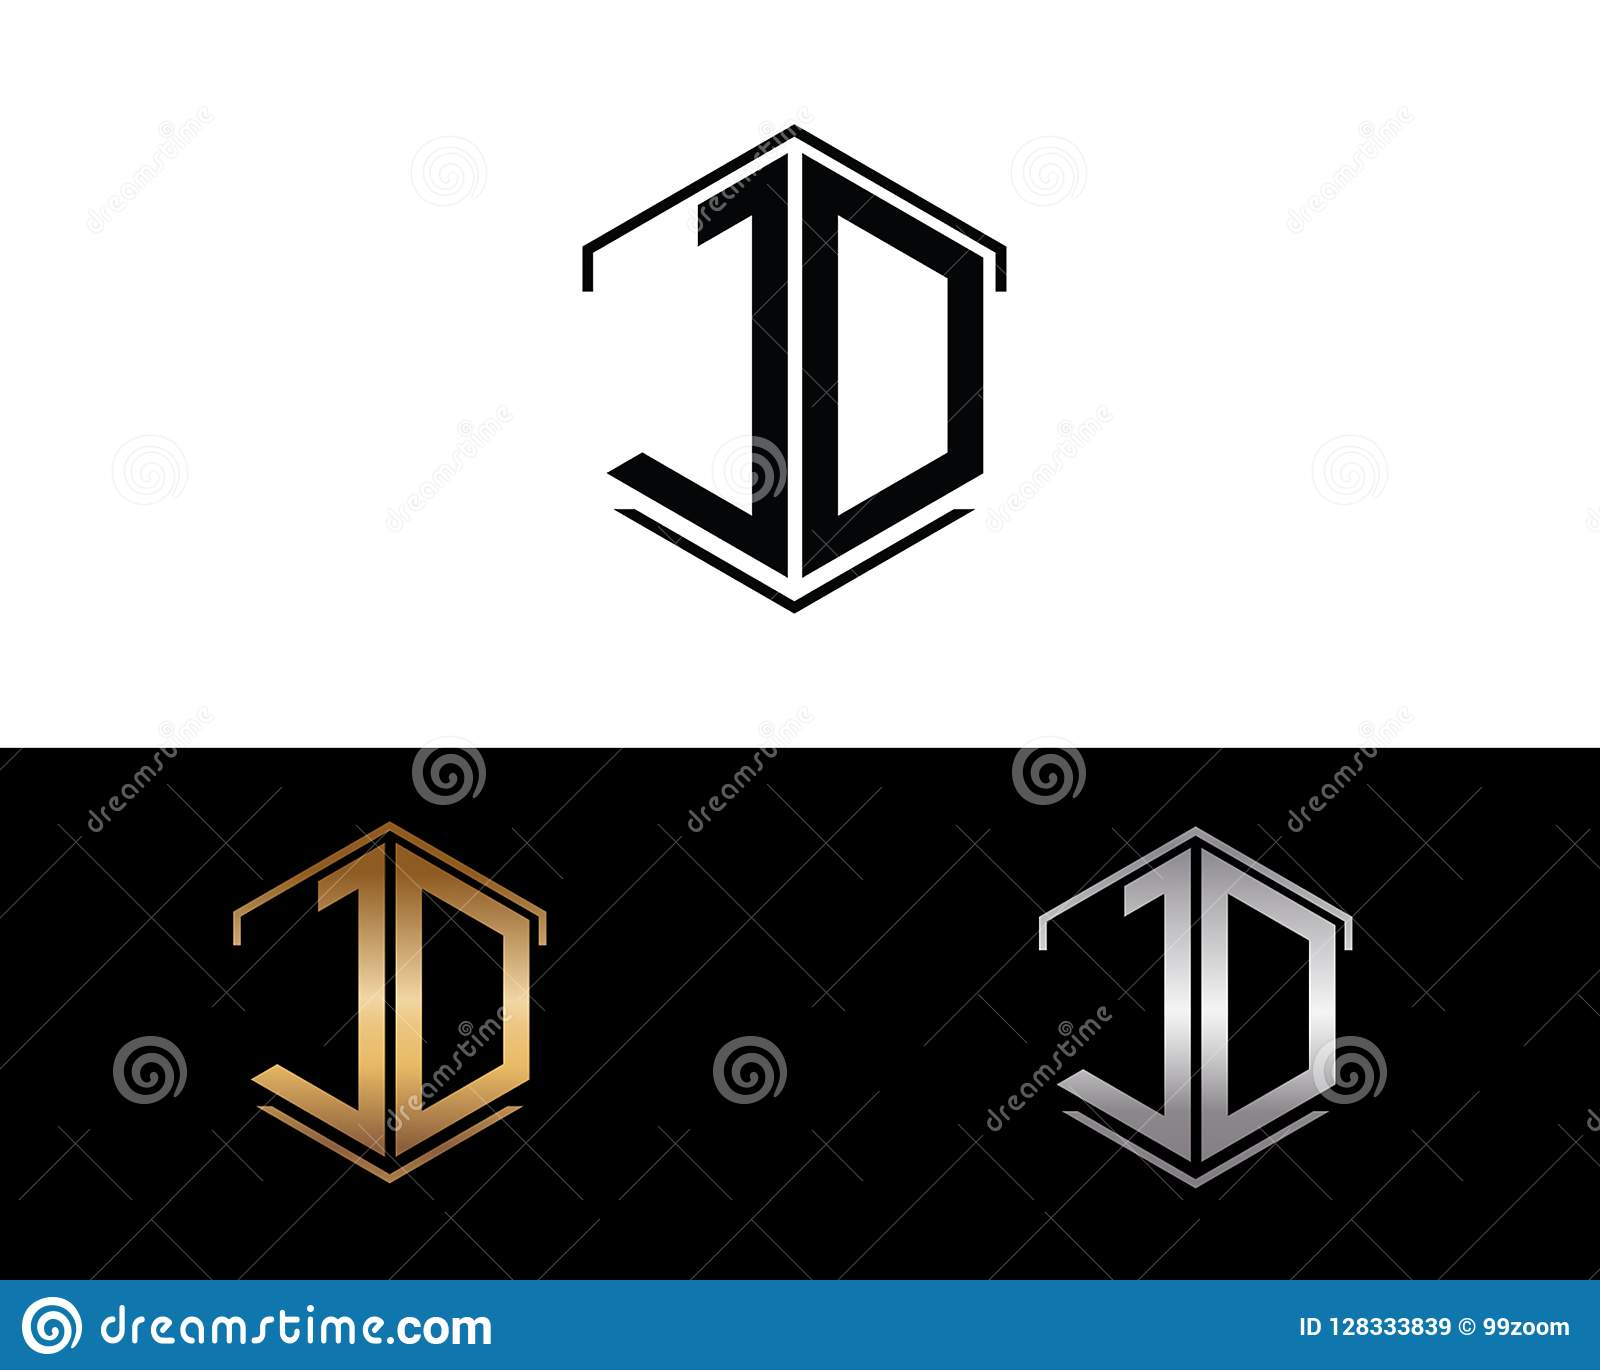 23+ Art Jd Logo Design